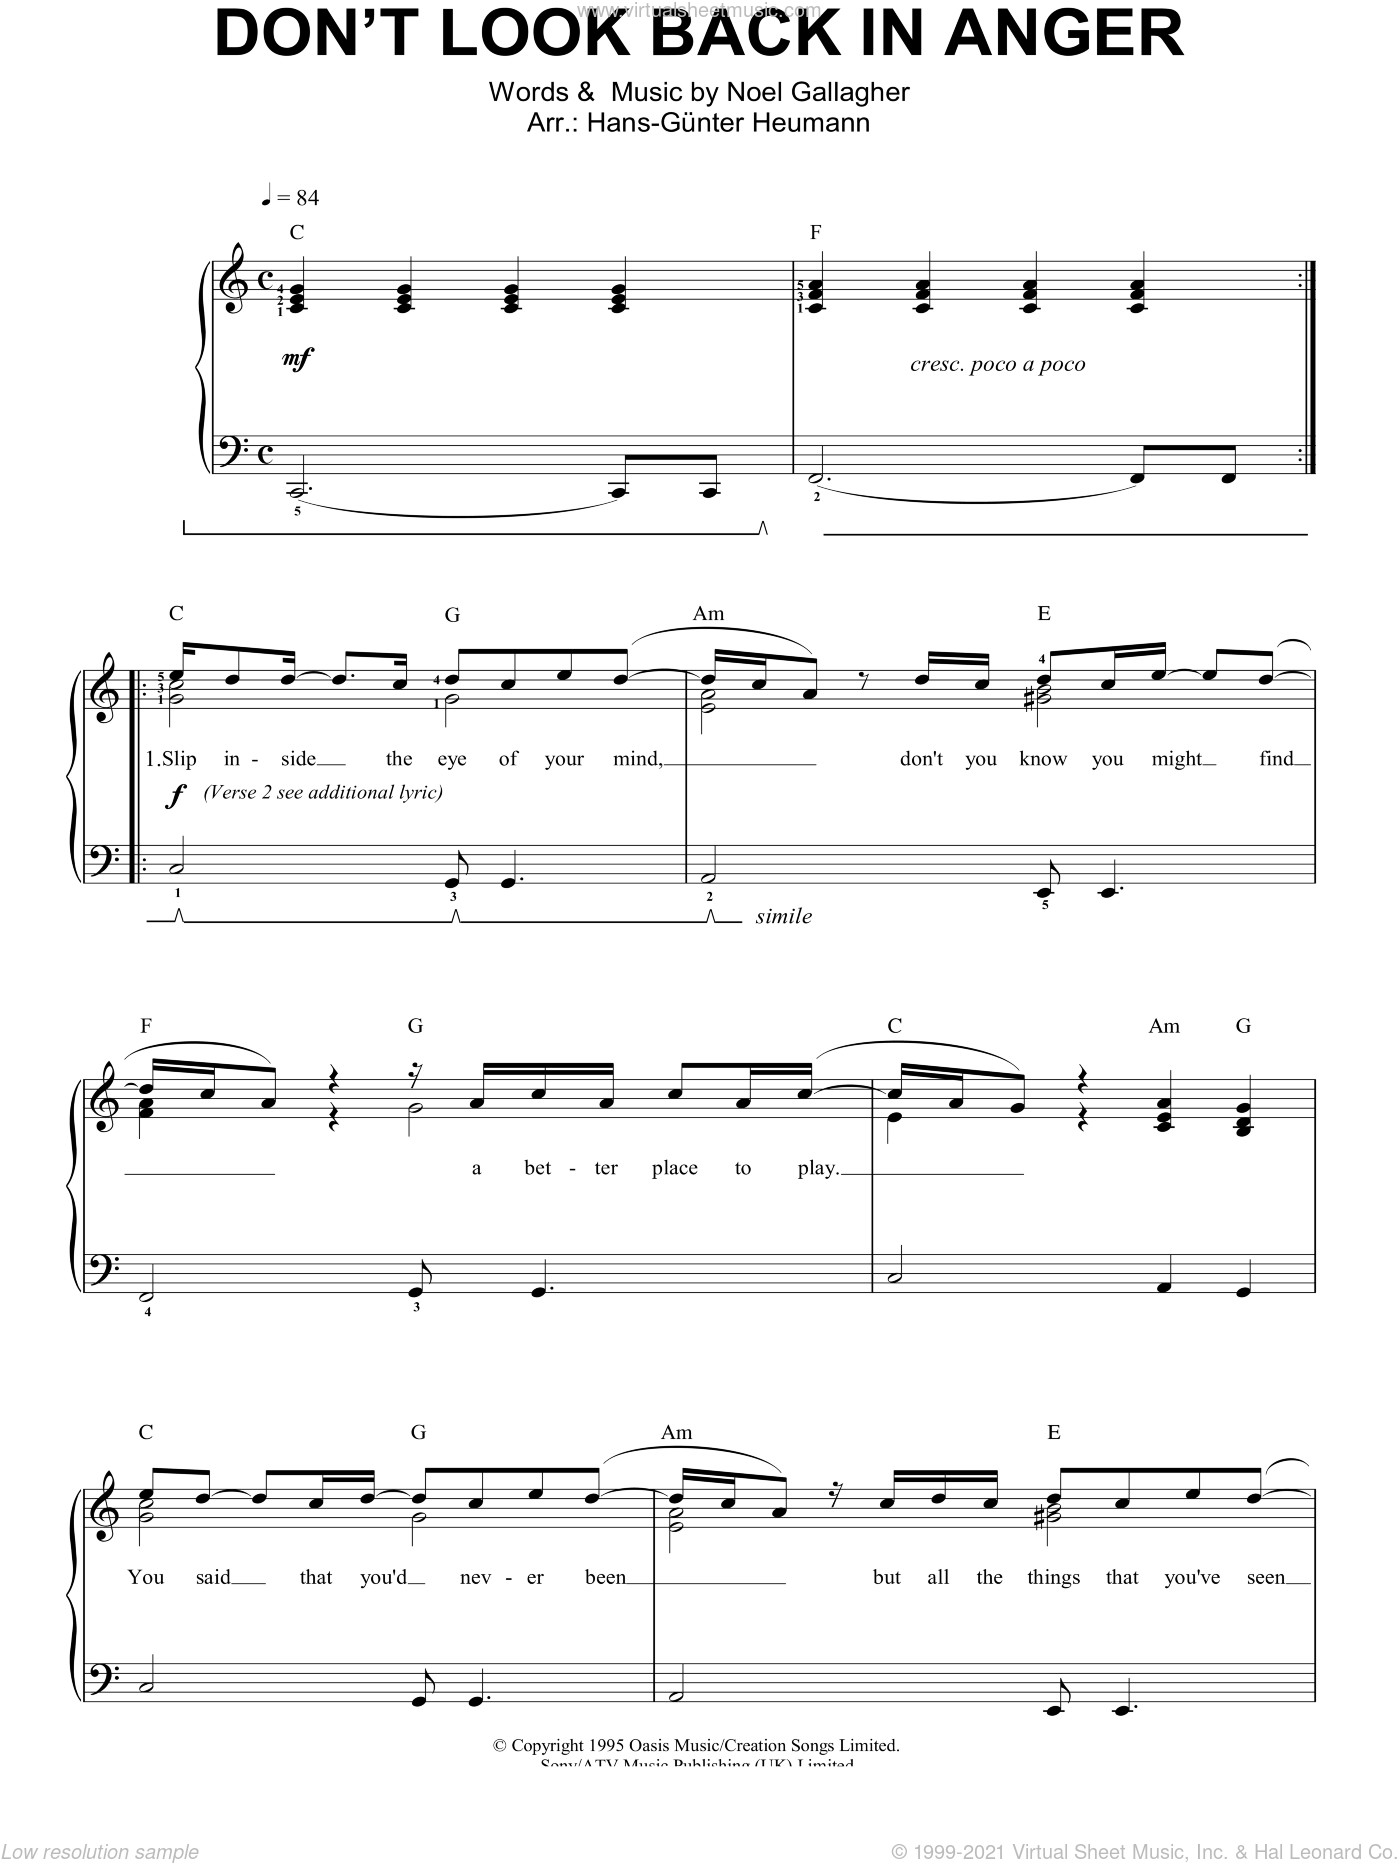 Don't Look Back In Anger sheet music for piano solo by Noel Gallagher